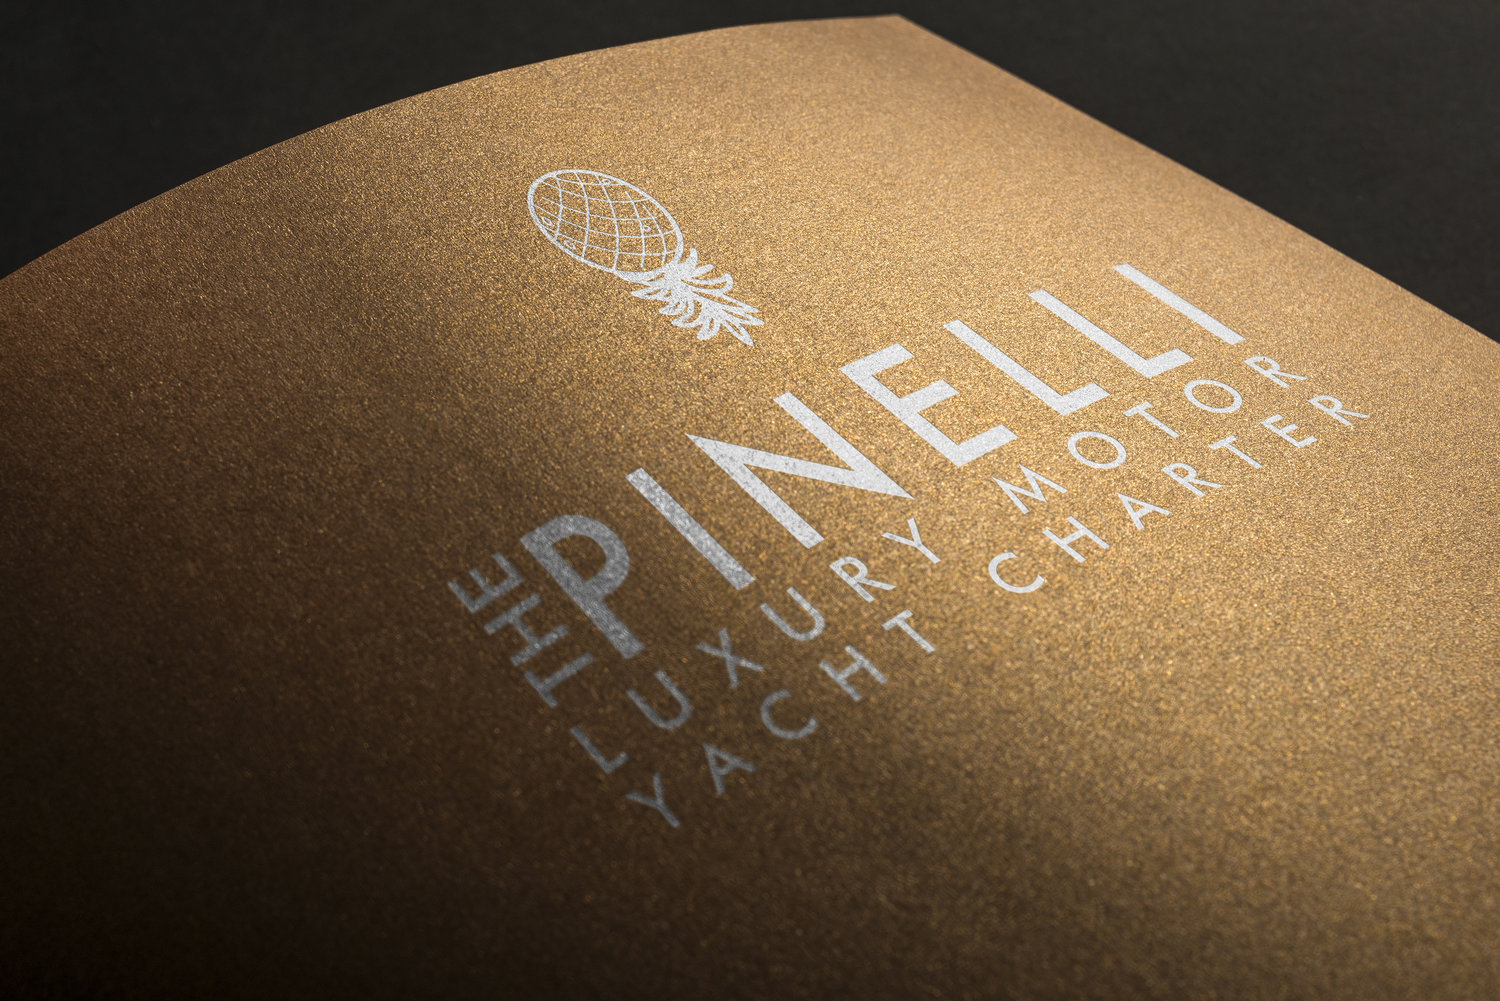 The Pinelli logo